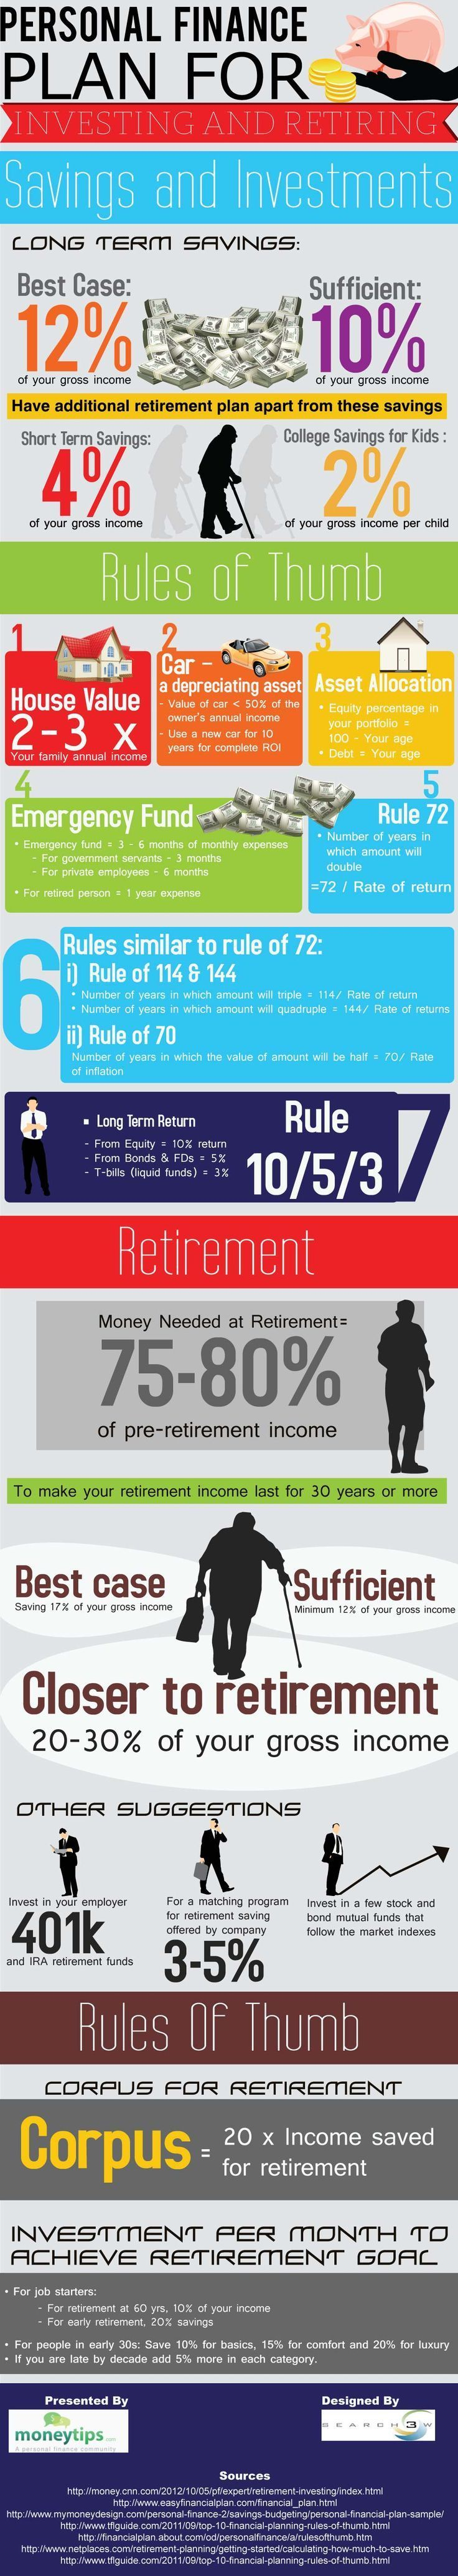 Personal Guide to Savings and Investment During RetirementMoney Crashers